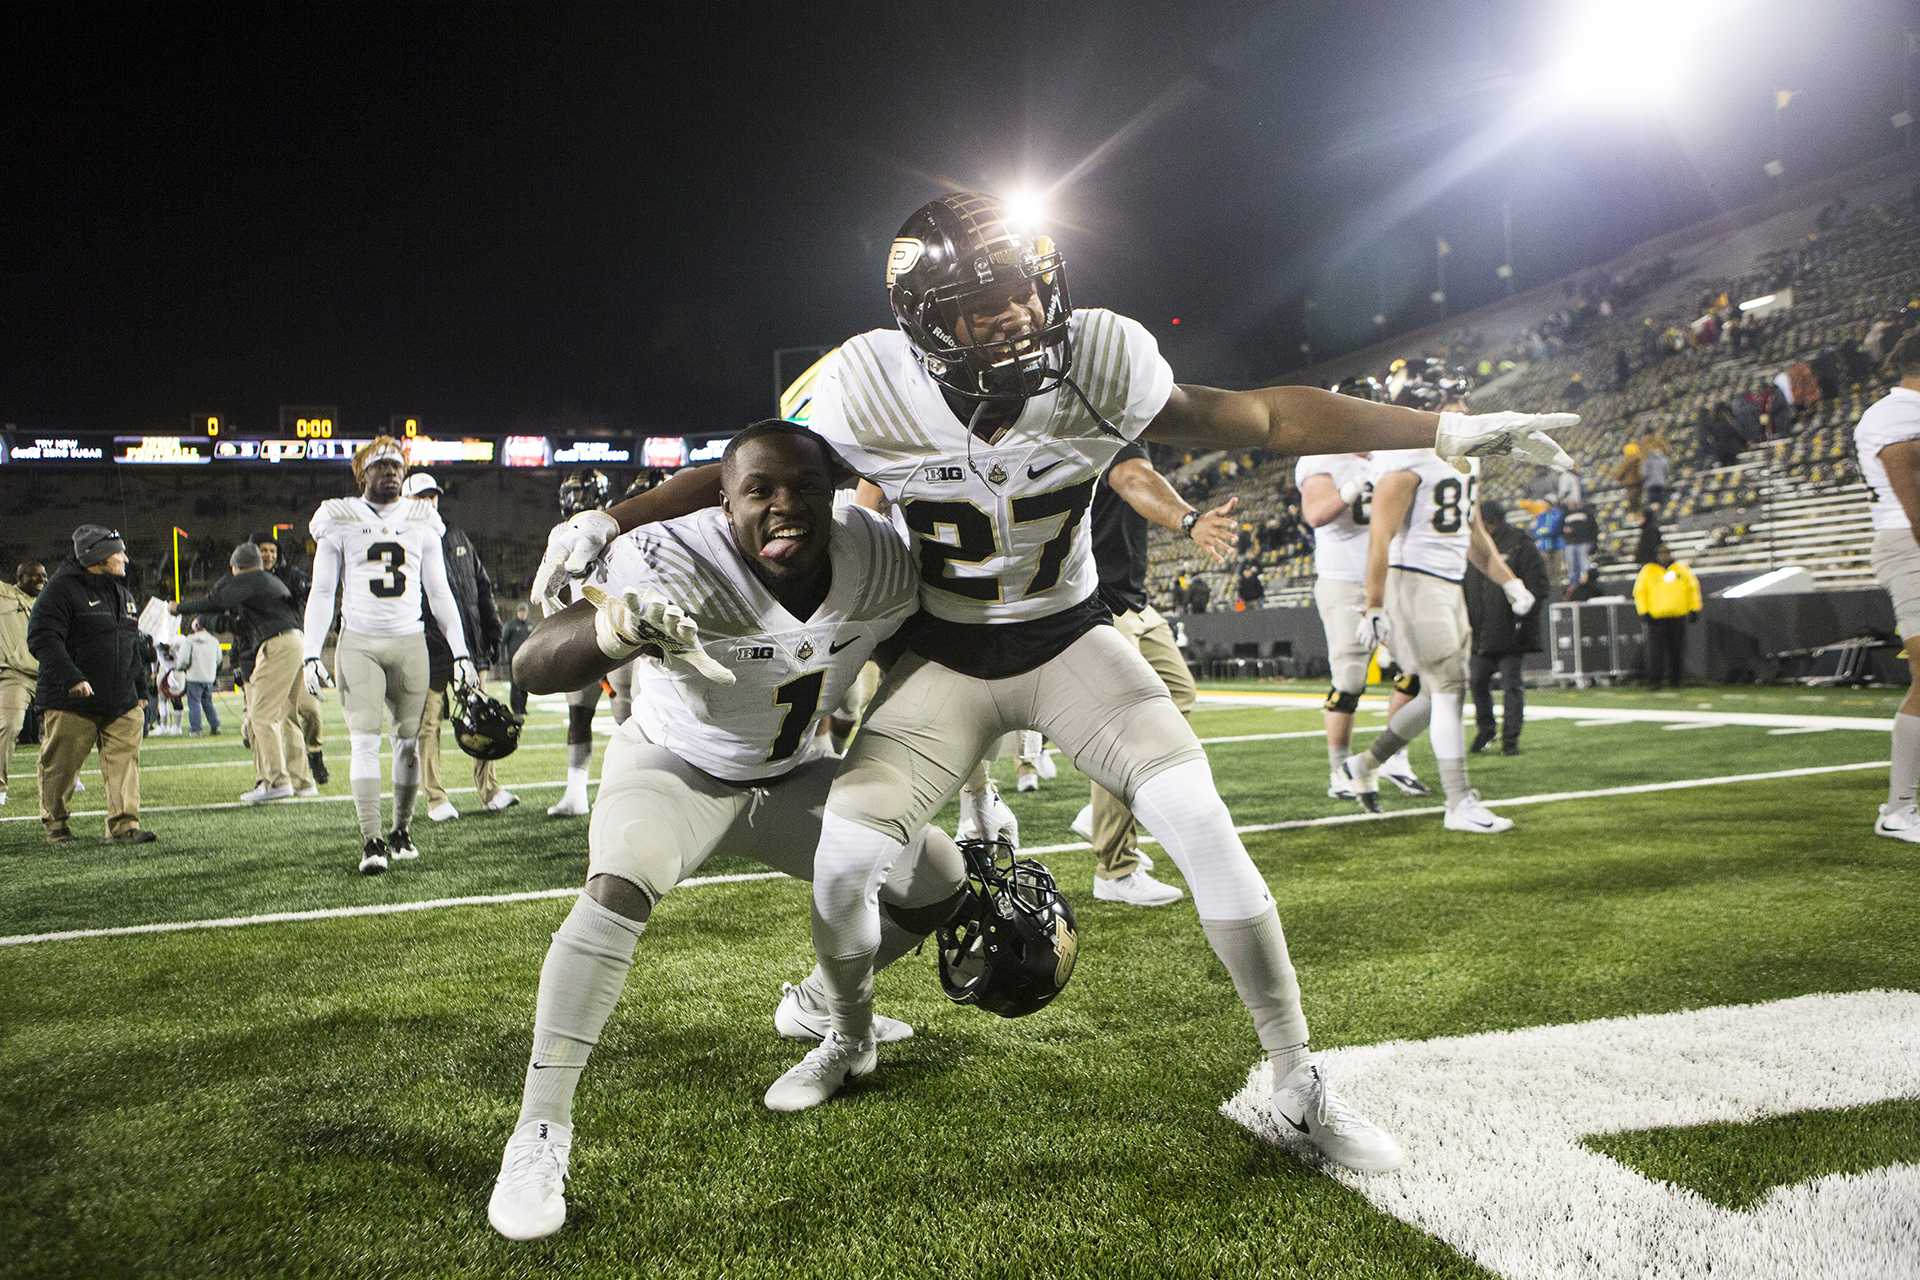 Purdue running back D.J. Knox (1) and safety Navon Mosley (27) play to cameras during the Iowa/Purdue football game in Kinnick Stadium on Saturday, Nov. 18, 2017. The Boilermakers defeated the Hawkeyes, 24-15. (Joseph Cress/The Daily Iowan)